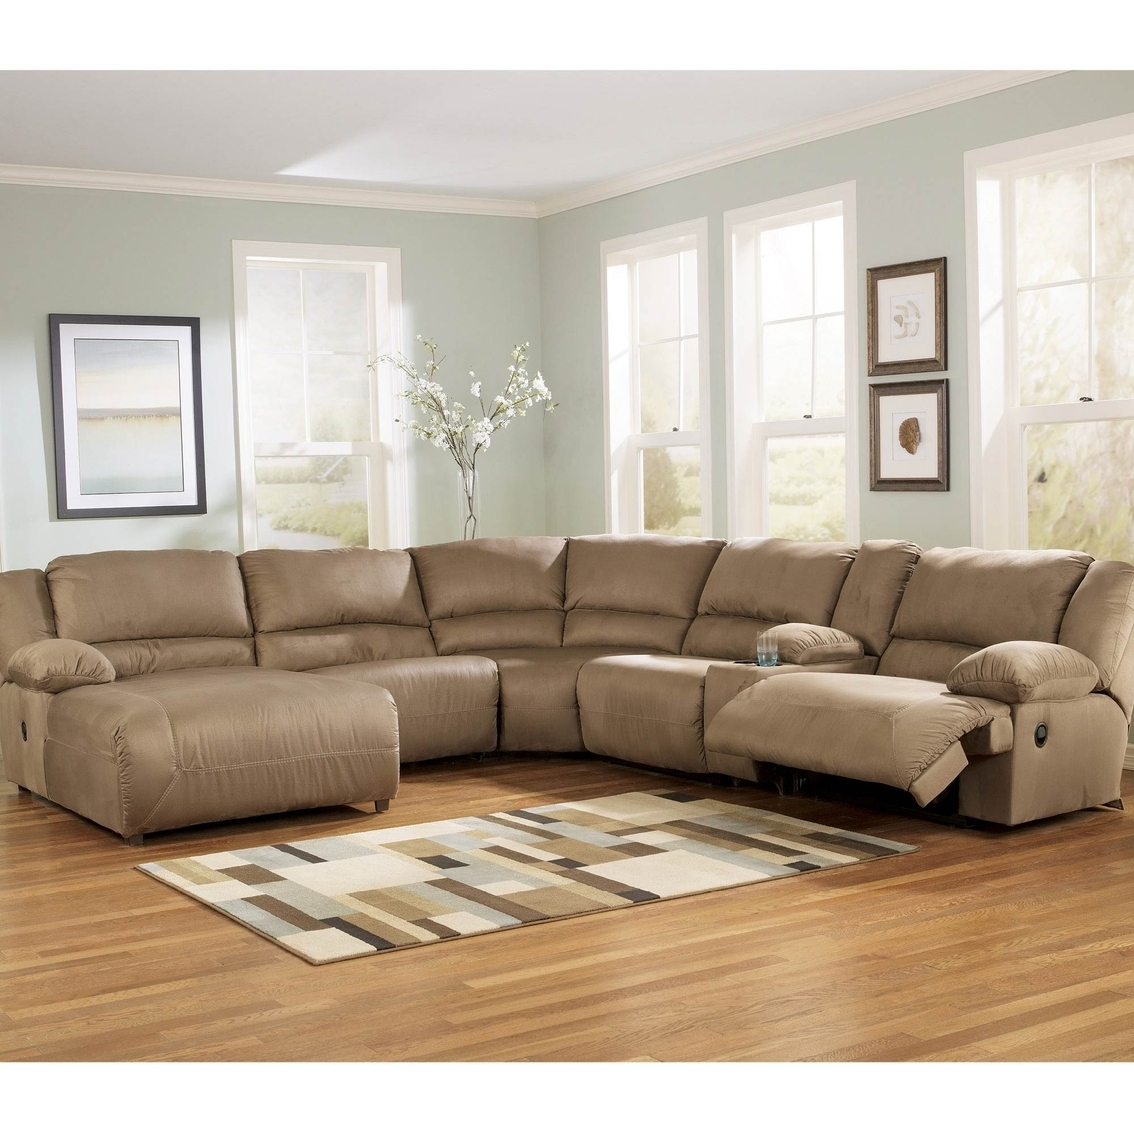 Well Liked Ashley Hogan Sectional With Two Recliners And Right Arm Facing In Chaise Recliners (View 14 of 15)